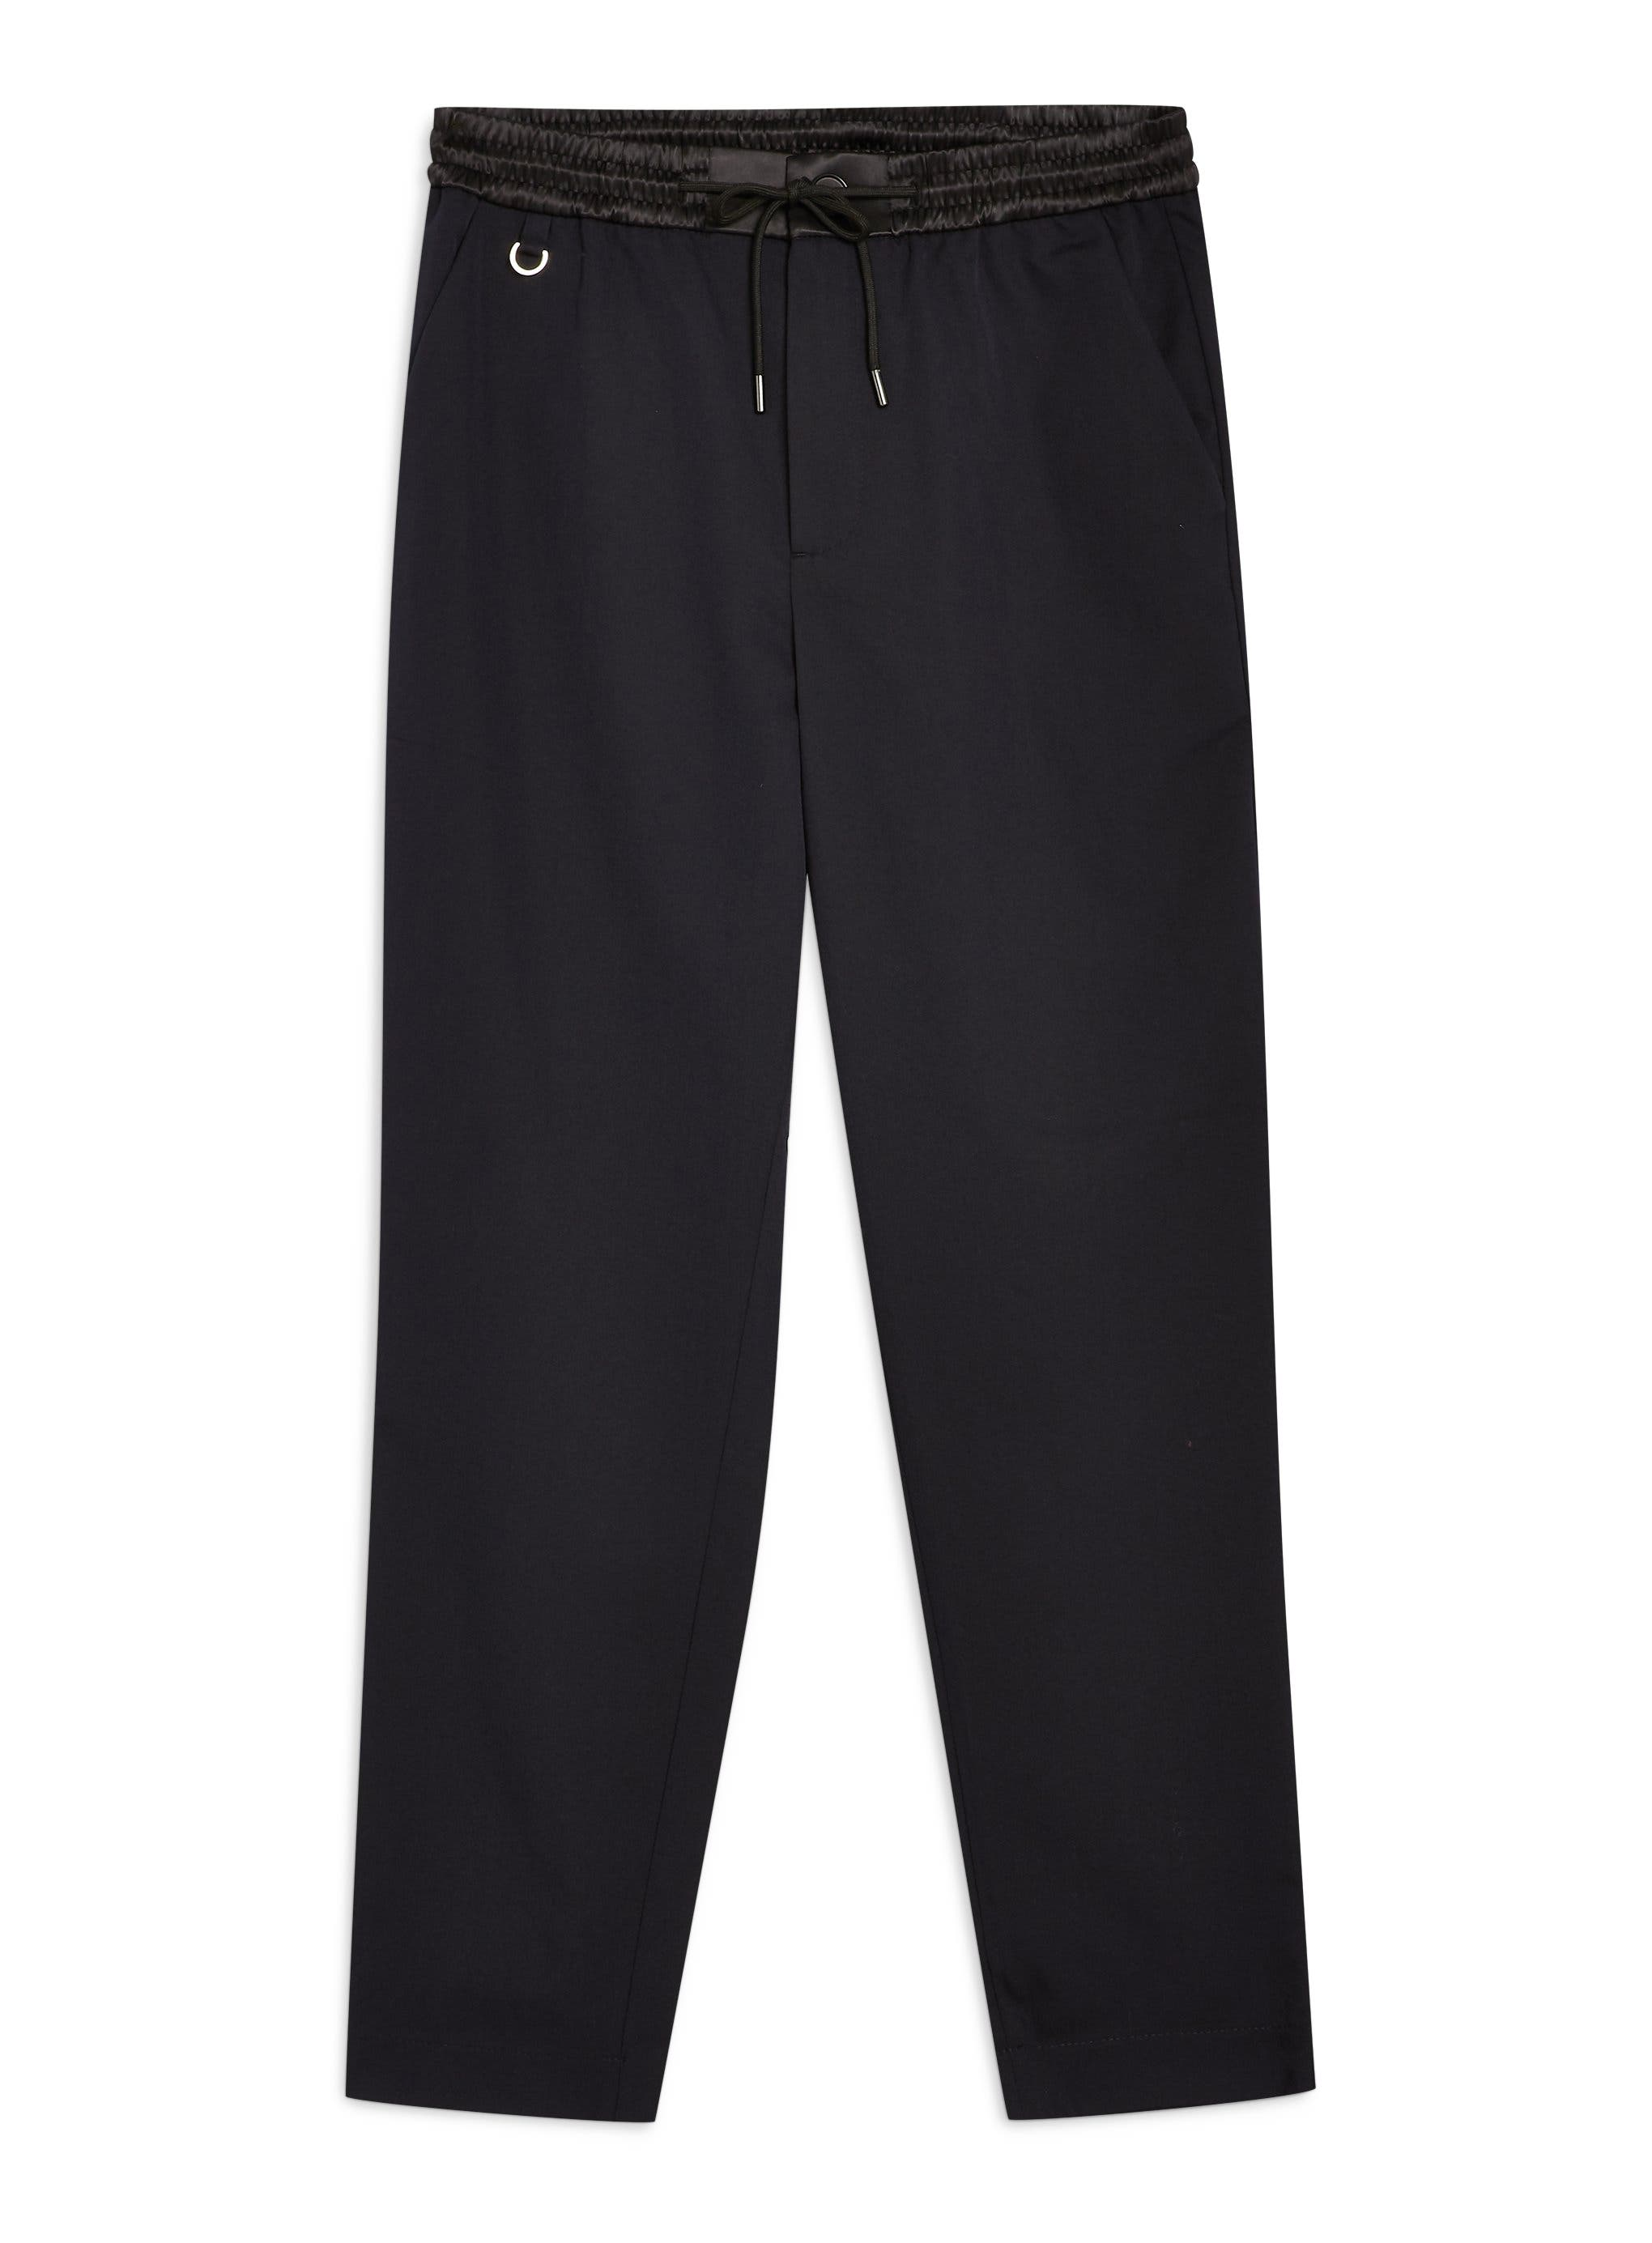 TOPMAN,                             Relaxed Cropped Trousers,                             Alternate thumbnail 4, color,                             NAVY BLUE